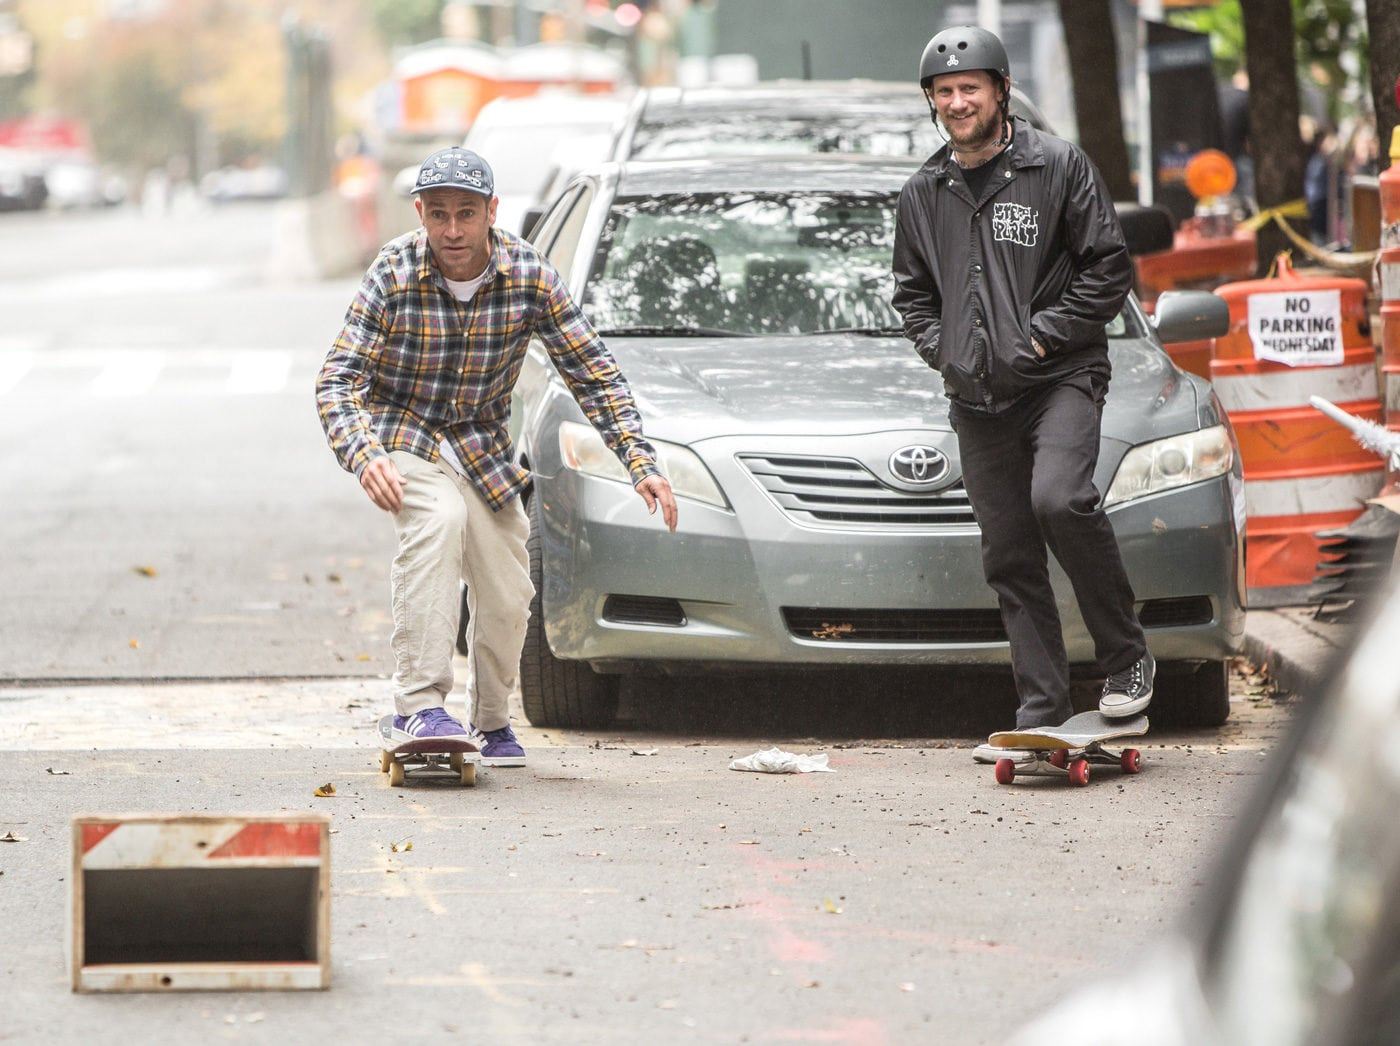 Mike Vallely & Mark Gonzales Skating in the streets of New York